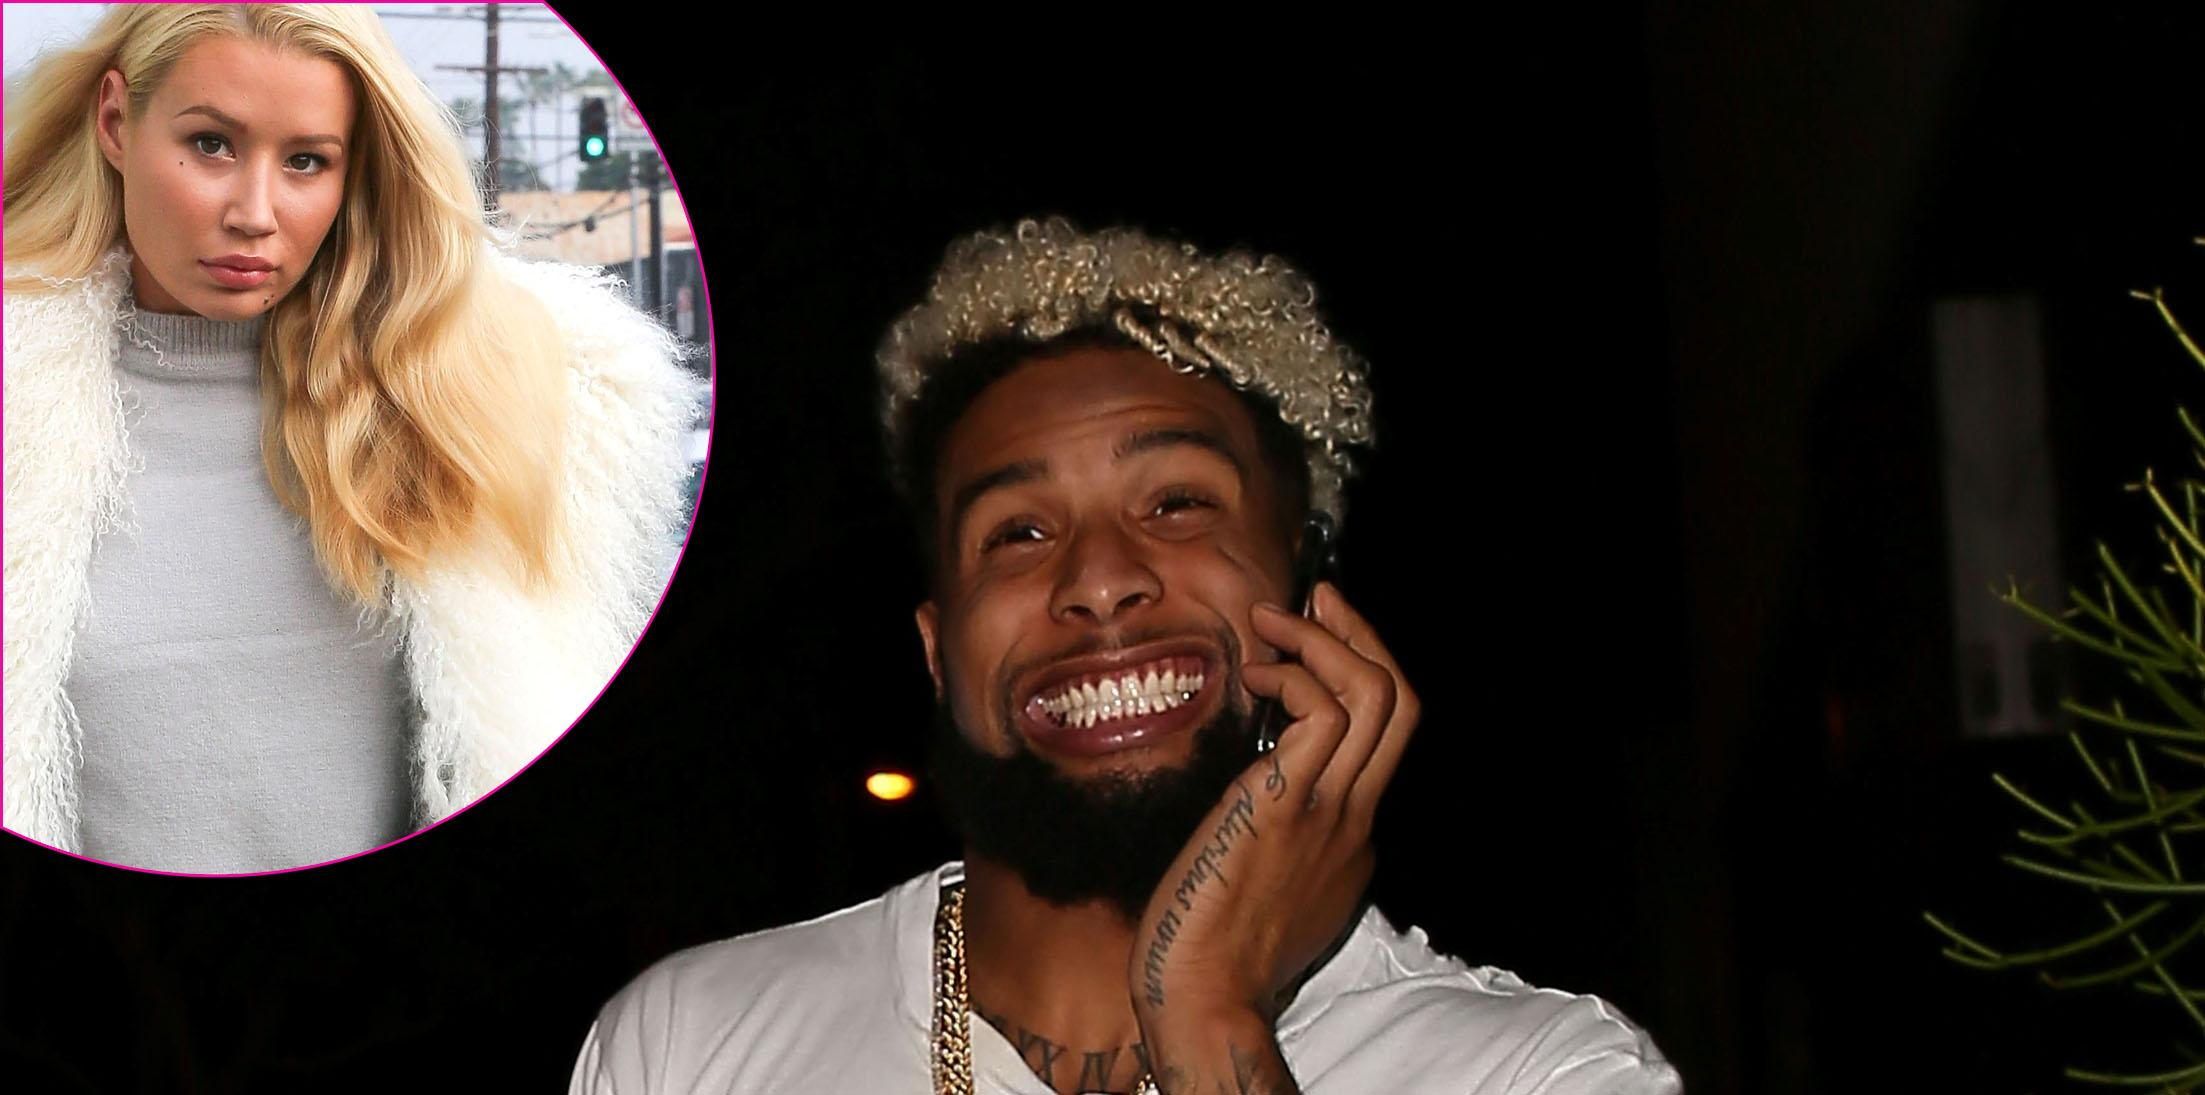 Odell Beckham arrives at Bootsy Bellows